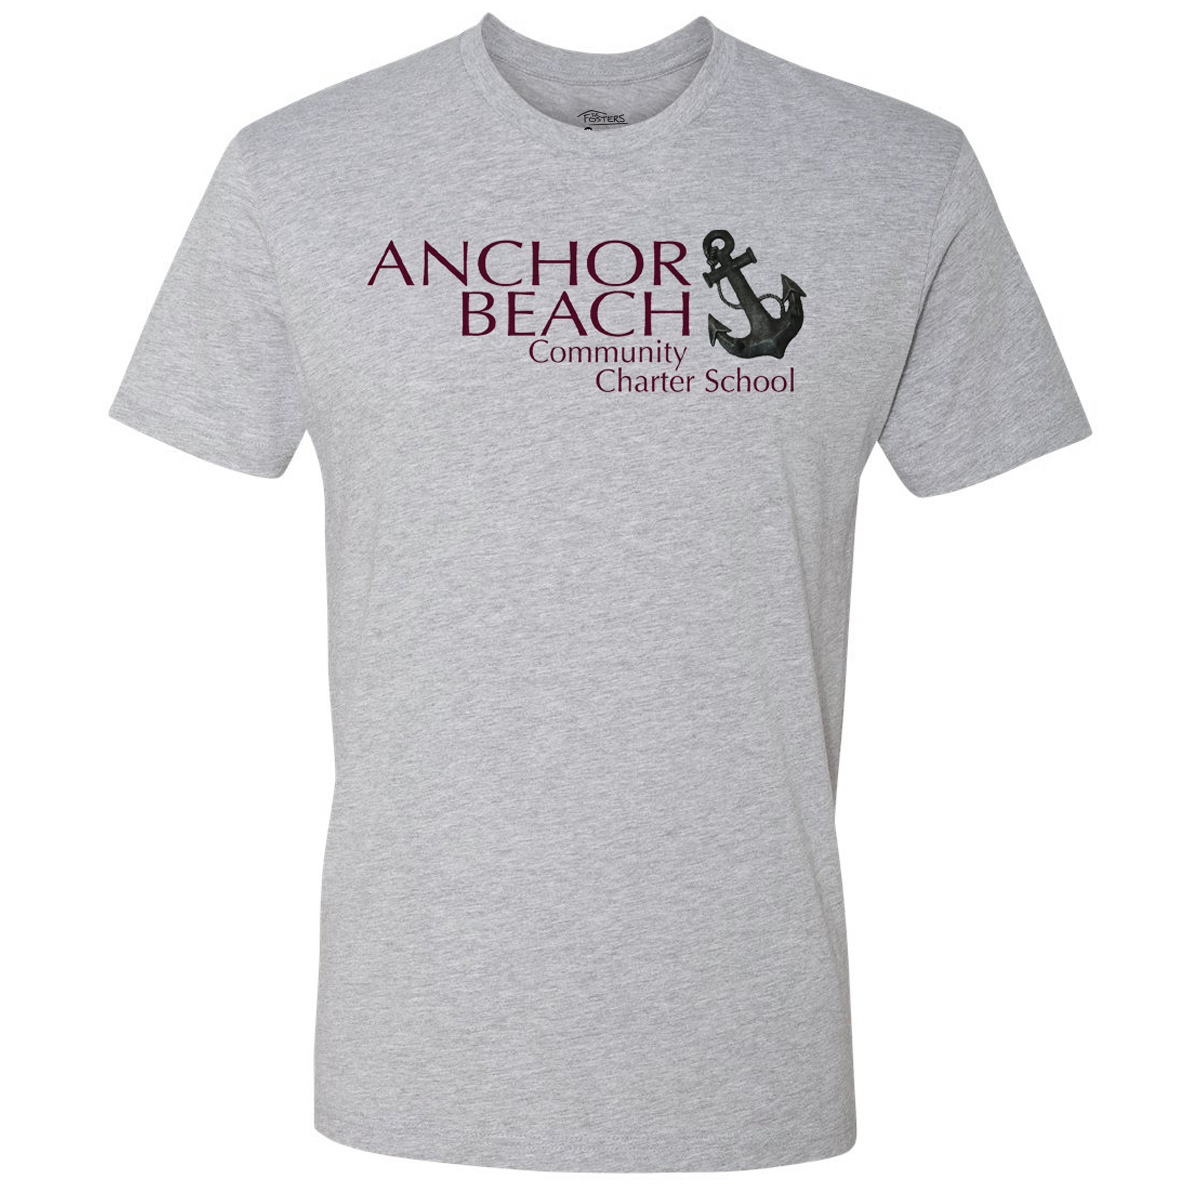 The Fosters Anchor Beach T-Shirt